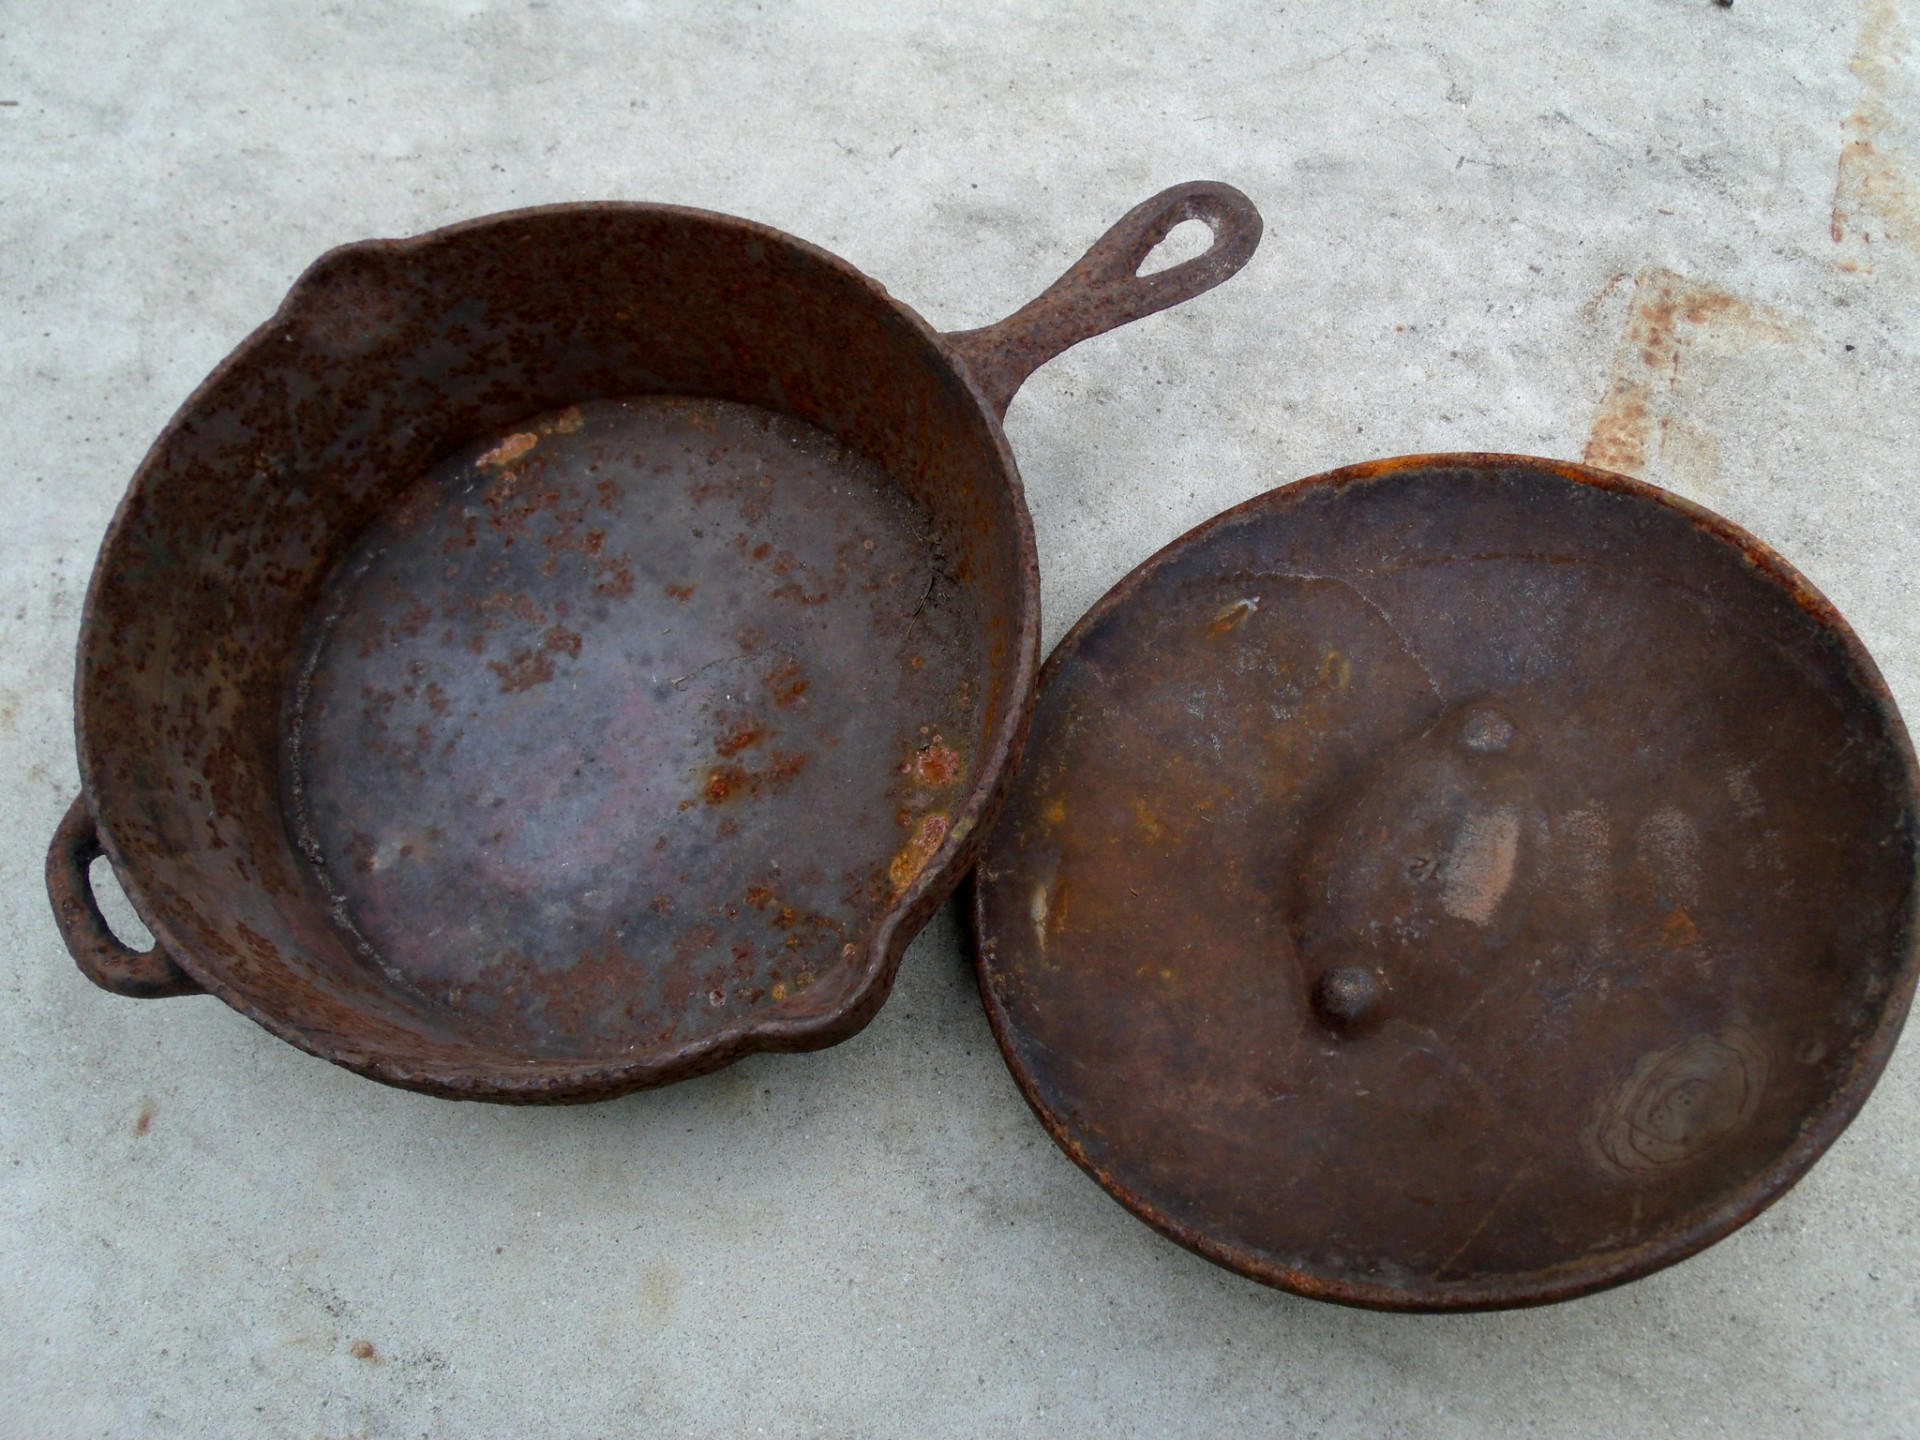 Preseasoned vintage cast iron skillet and lid.